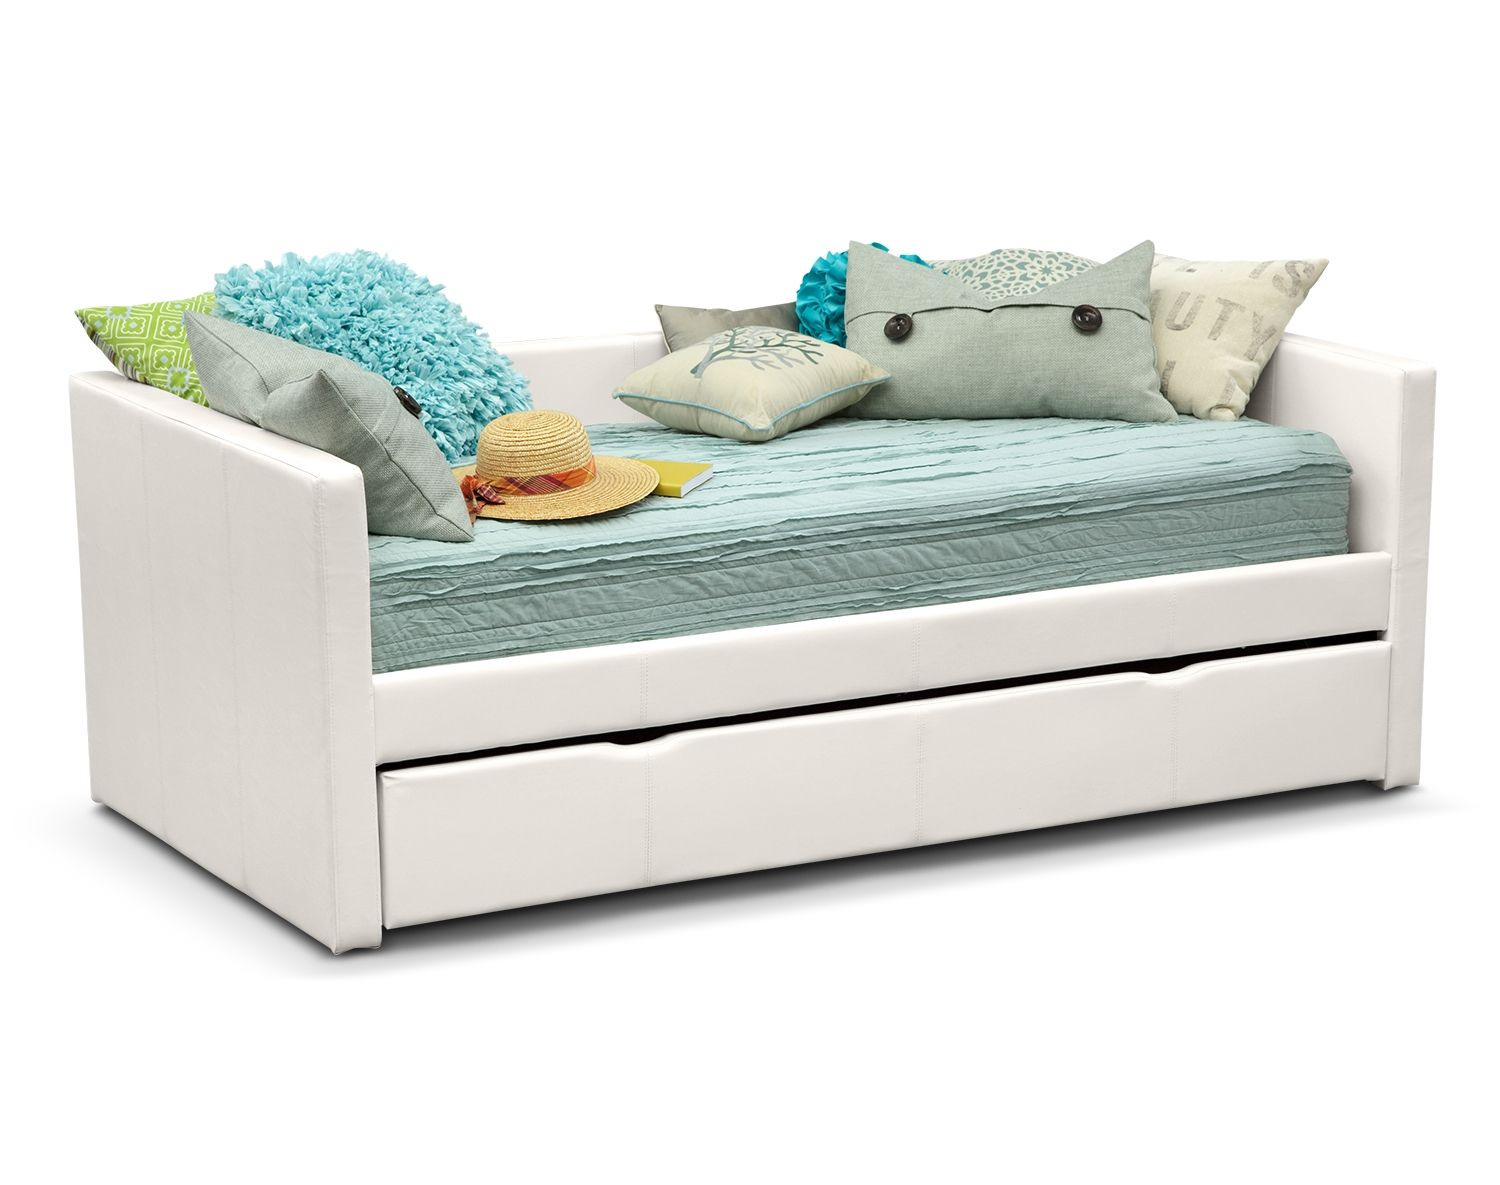 The Carey White Collection American Signature Furniture